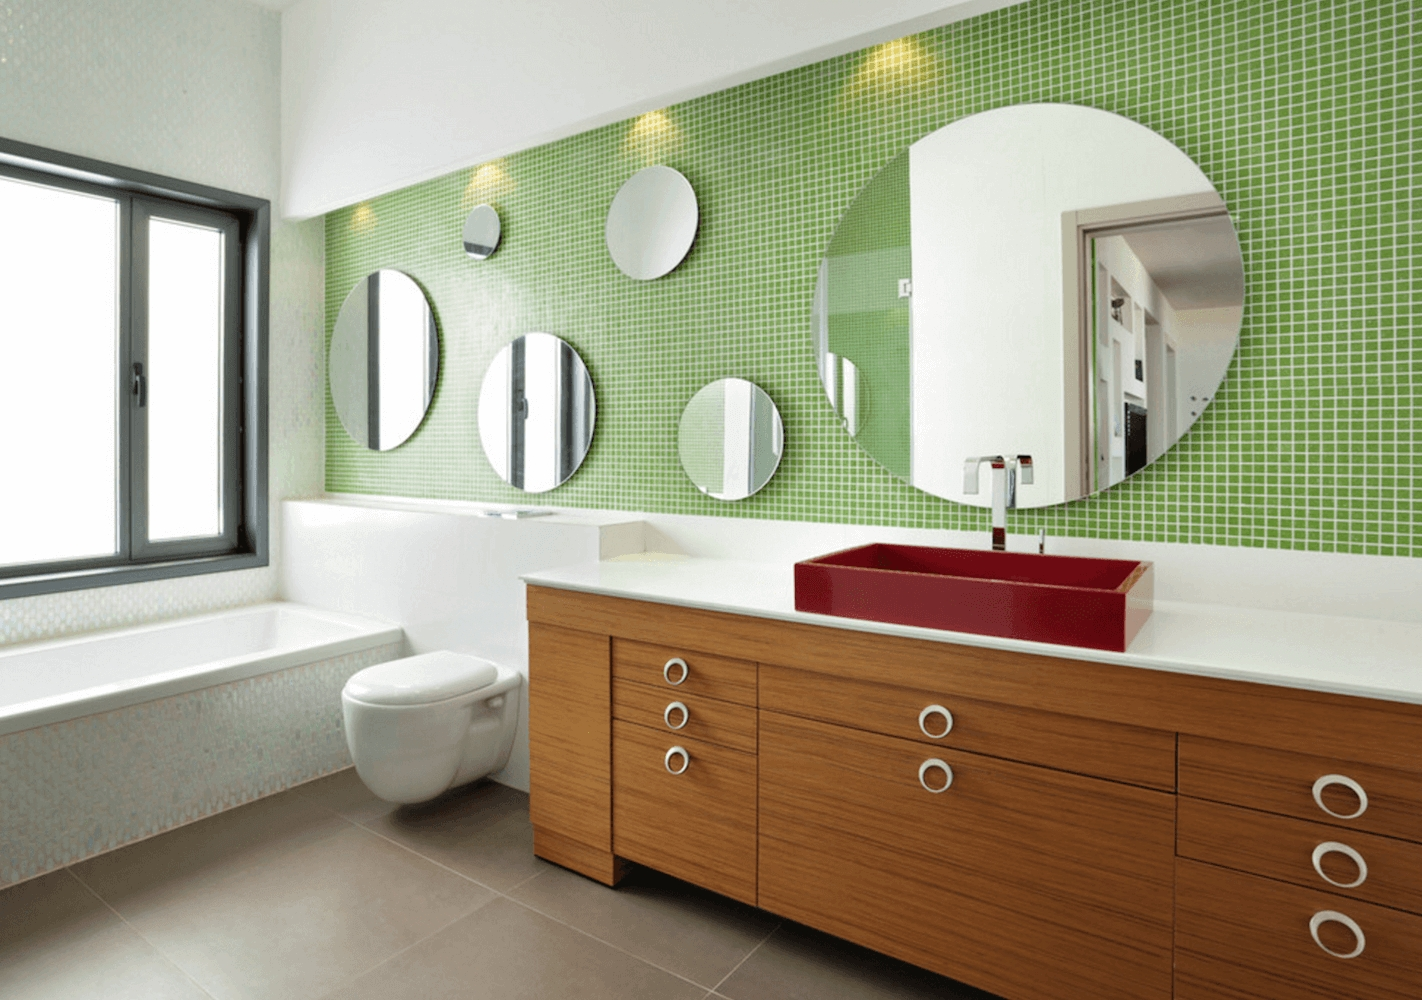 Bathrooms Design : Bathroom Medicine Cabinet With Mirror Large In Large Bathroom Wall Mirrors (Image 12 of 20)